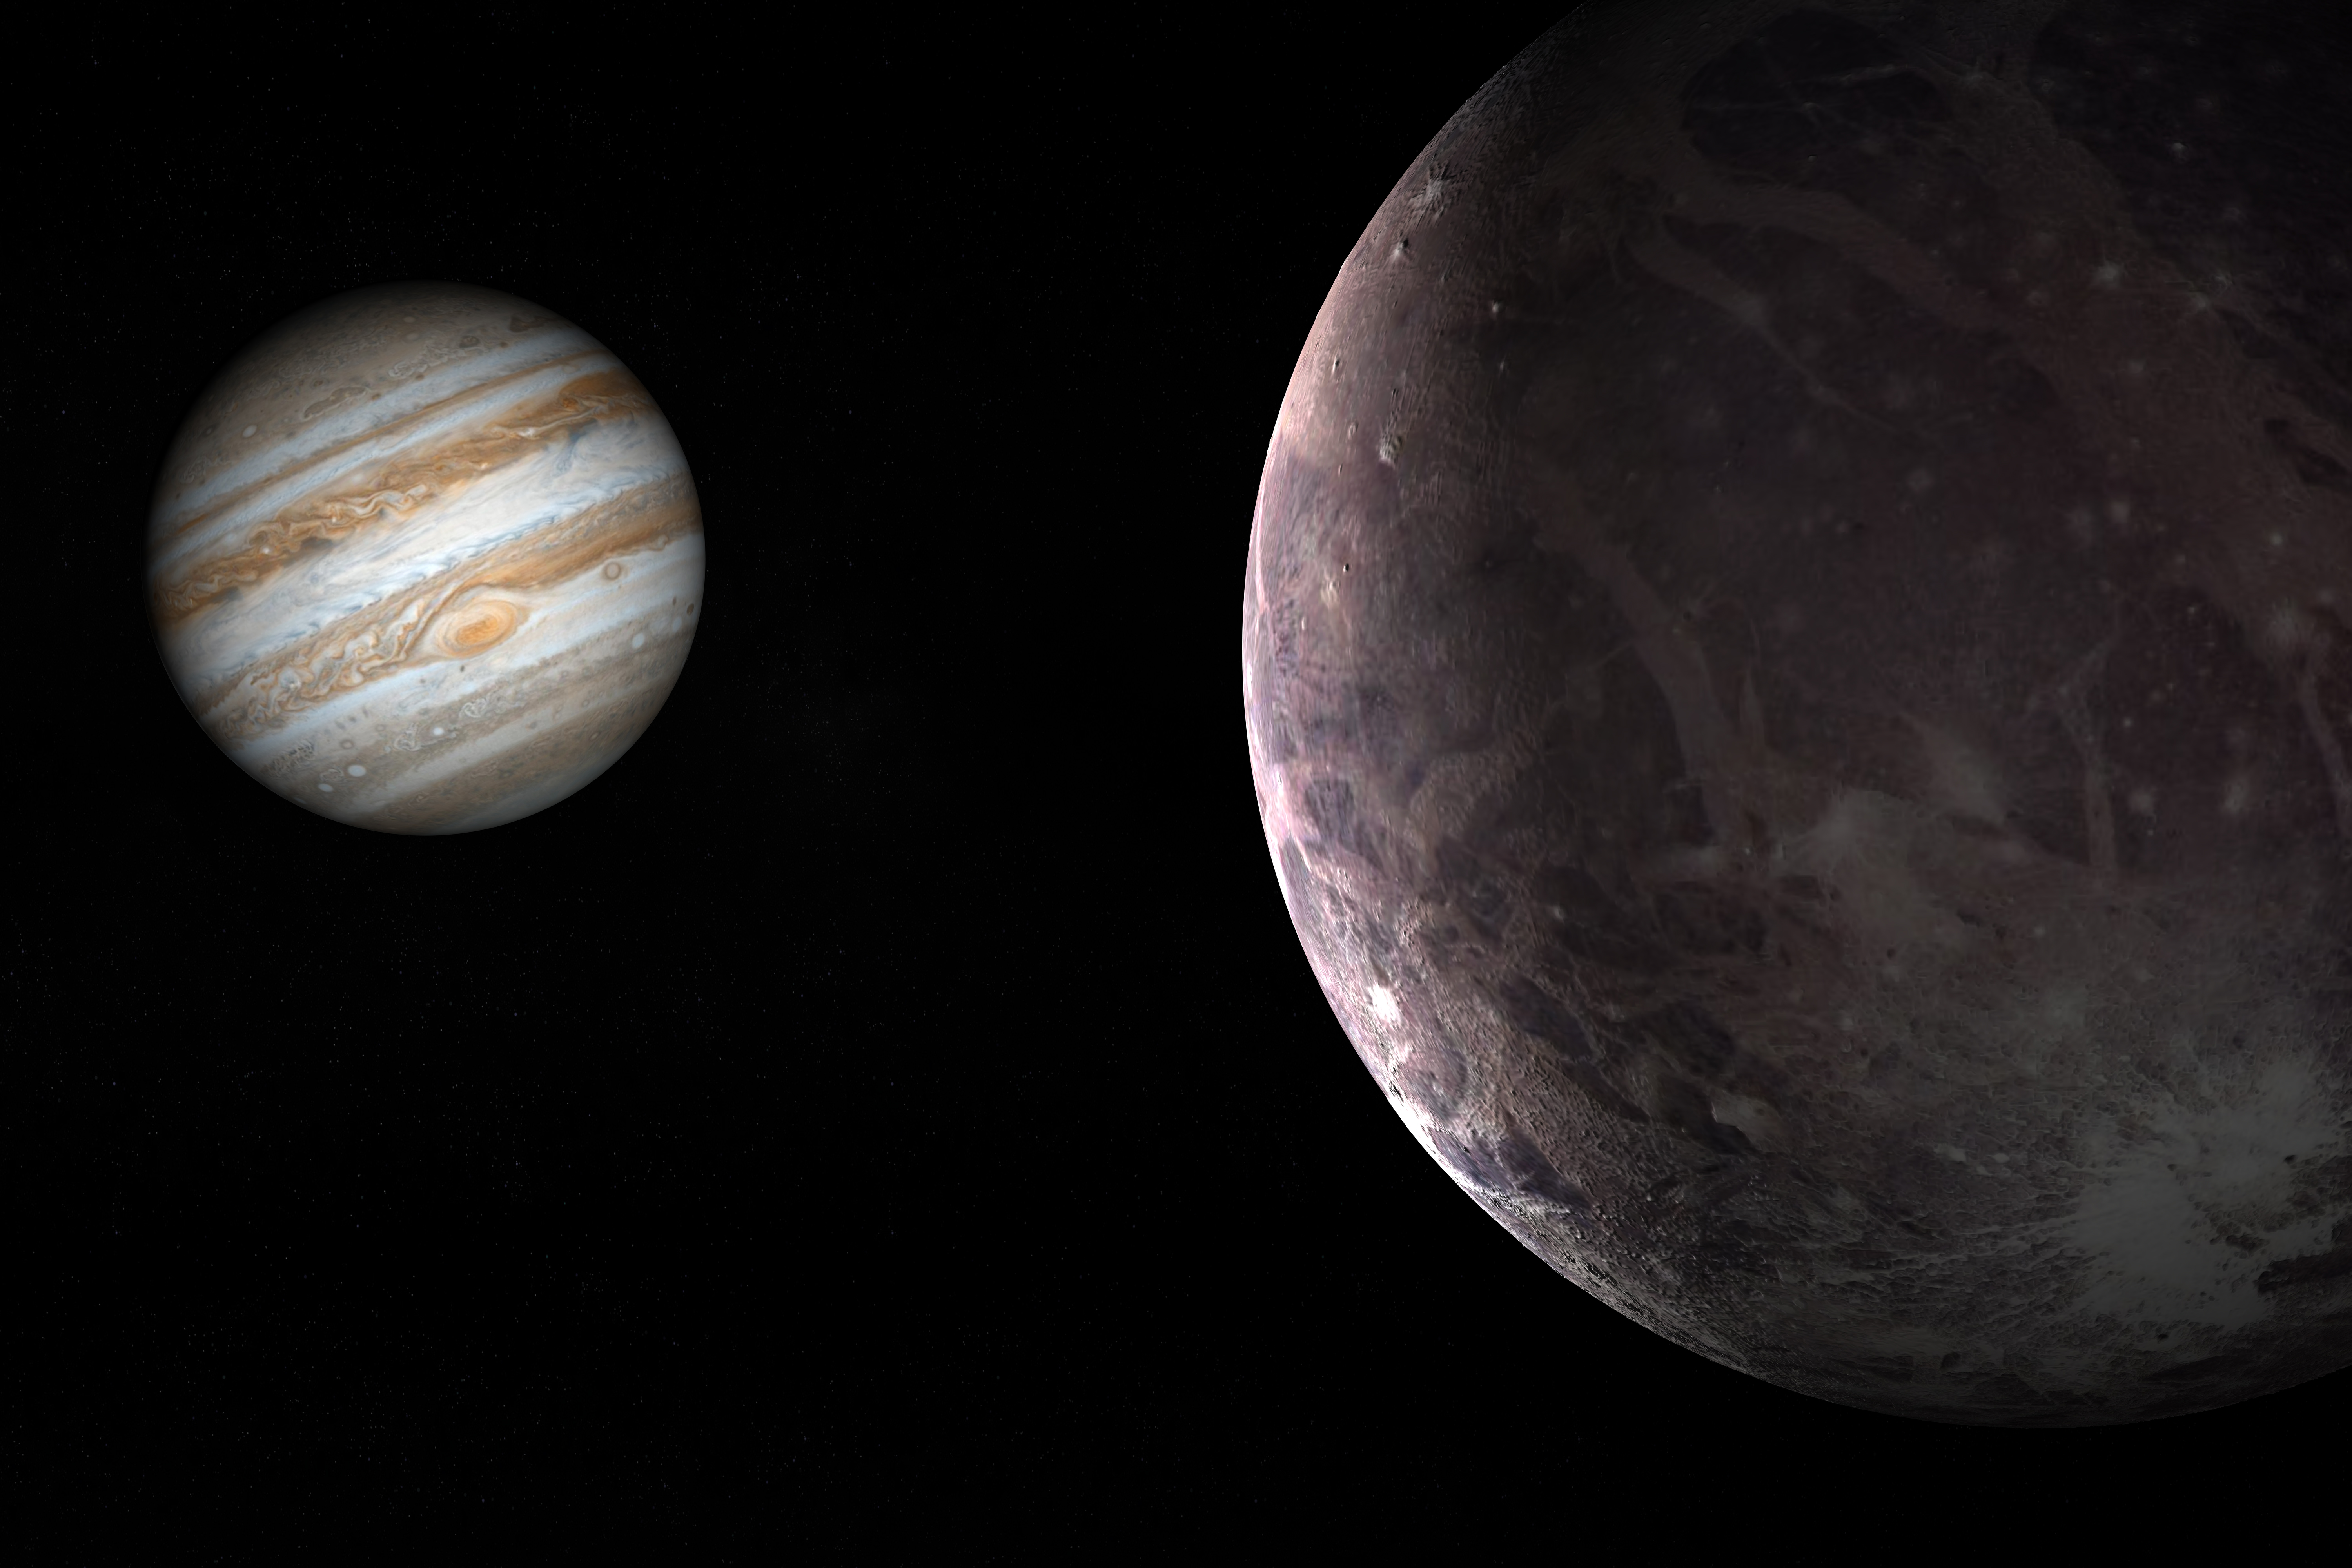 Hubble finds evidence of water vapor on Jupiter's largest moon